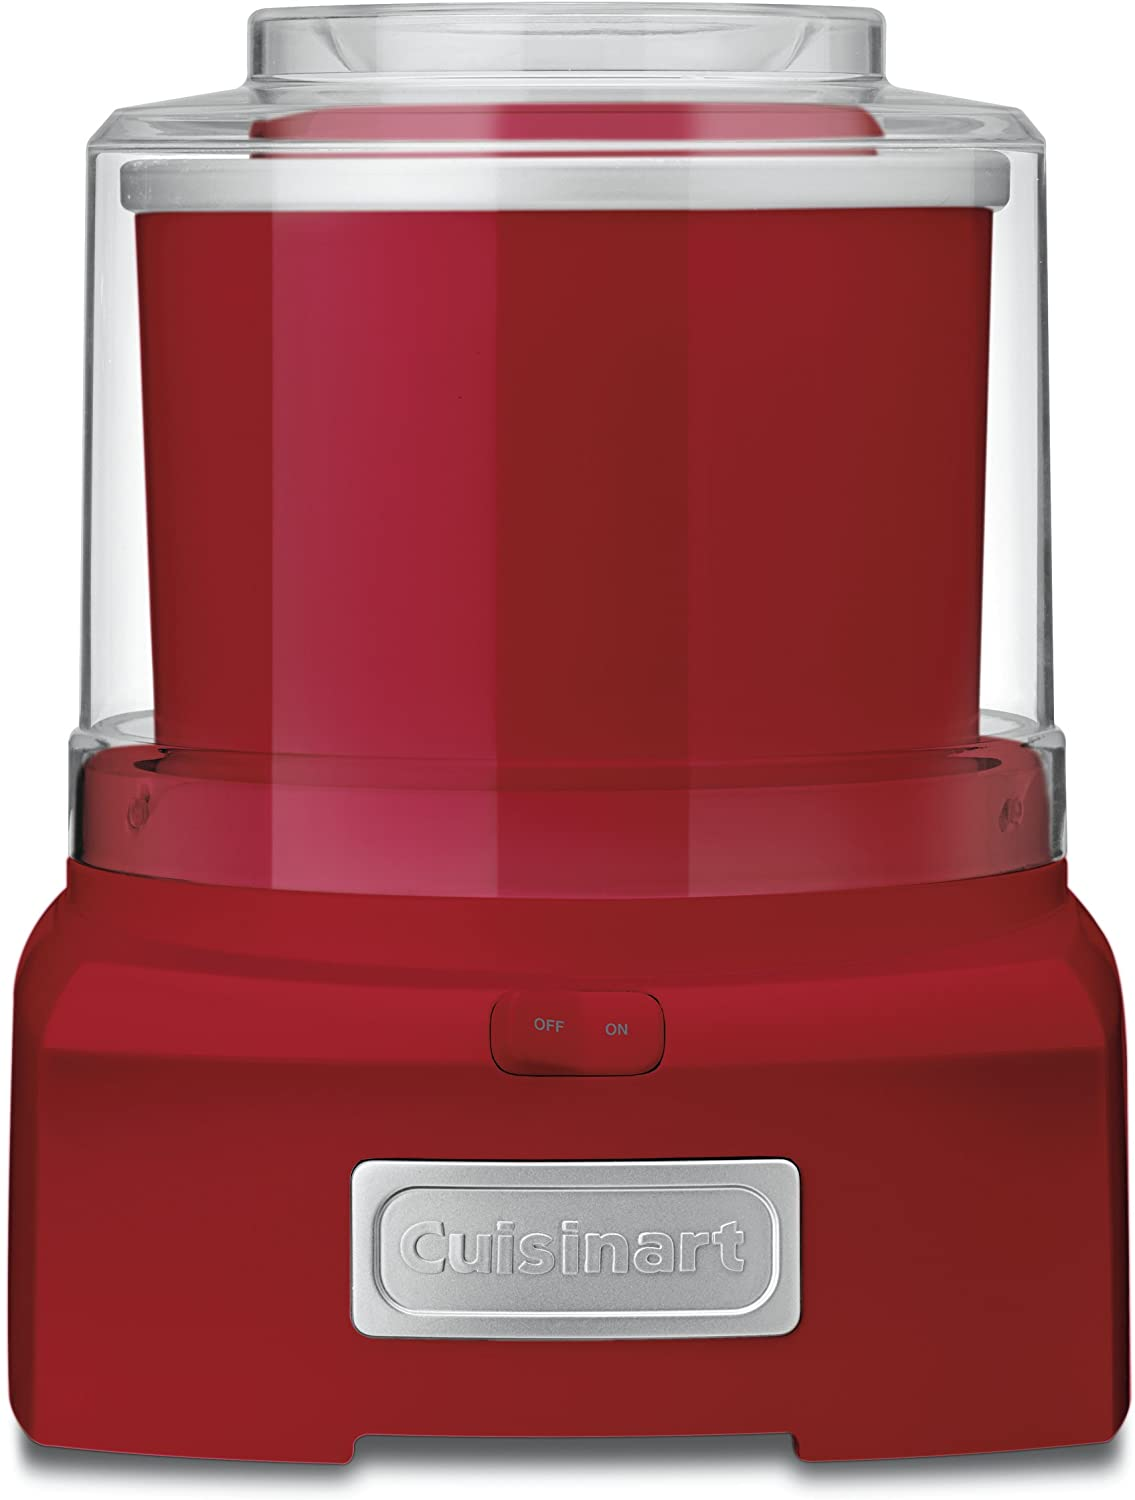 Cuisinart Frozen Yogurt Ice Cream Maker, 1.5-Quart